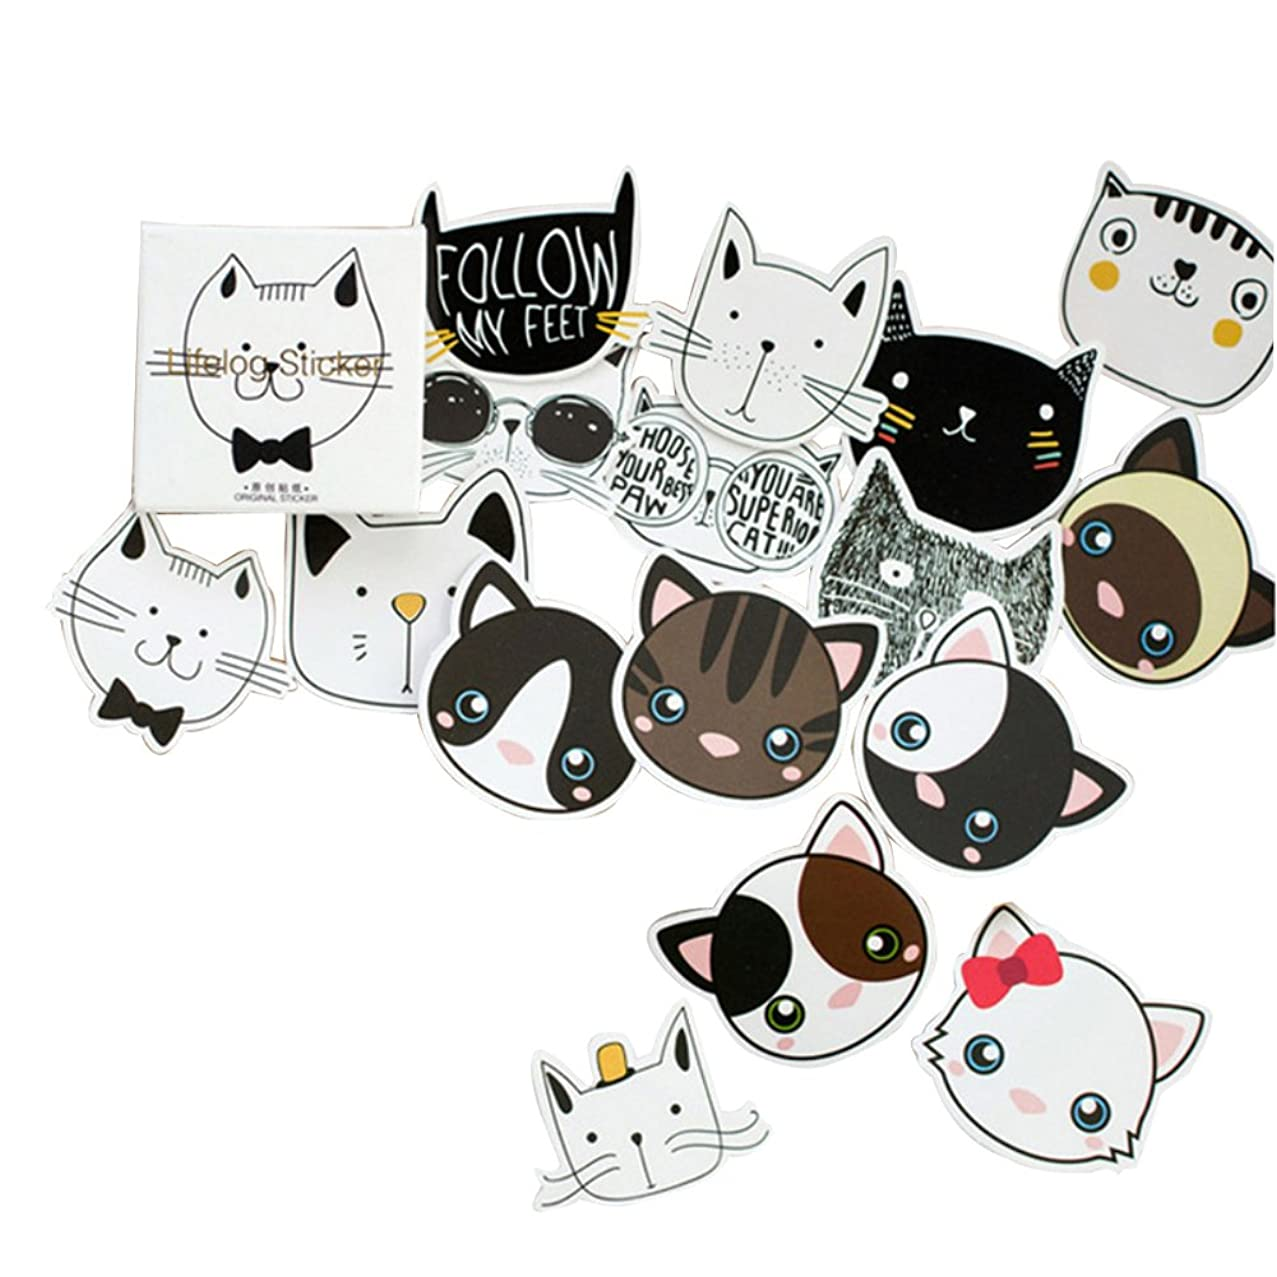 5 Set(225pcs) Cute Cat Diary Planner Scrapbooking Stationery Paper Label School Office Supplies Hand Made Gift Packing Baking Stickers Kids Decorative Sticker